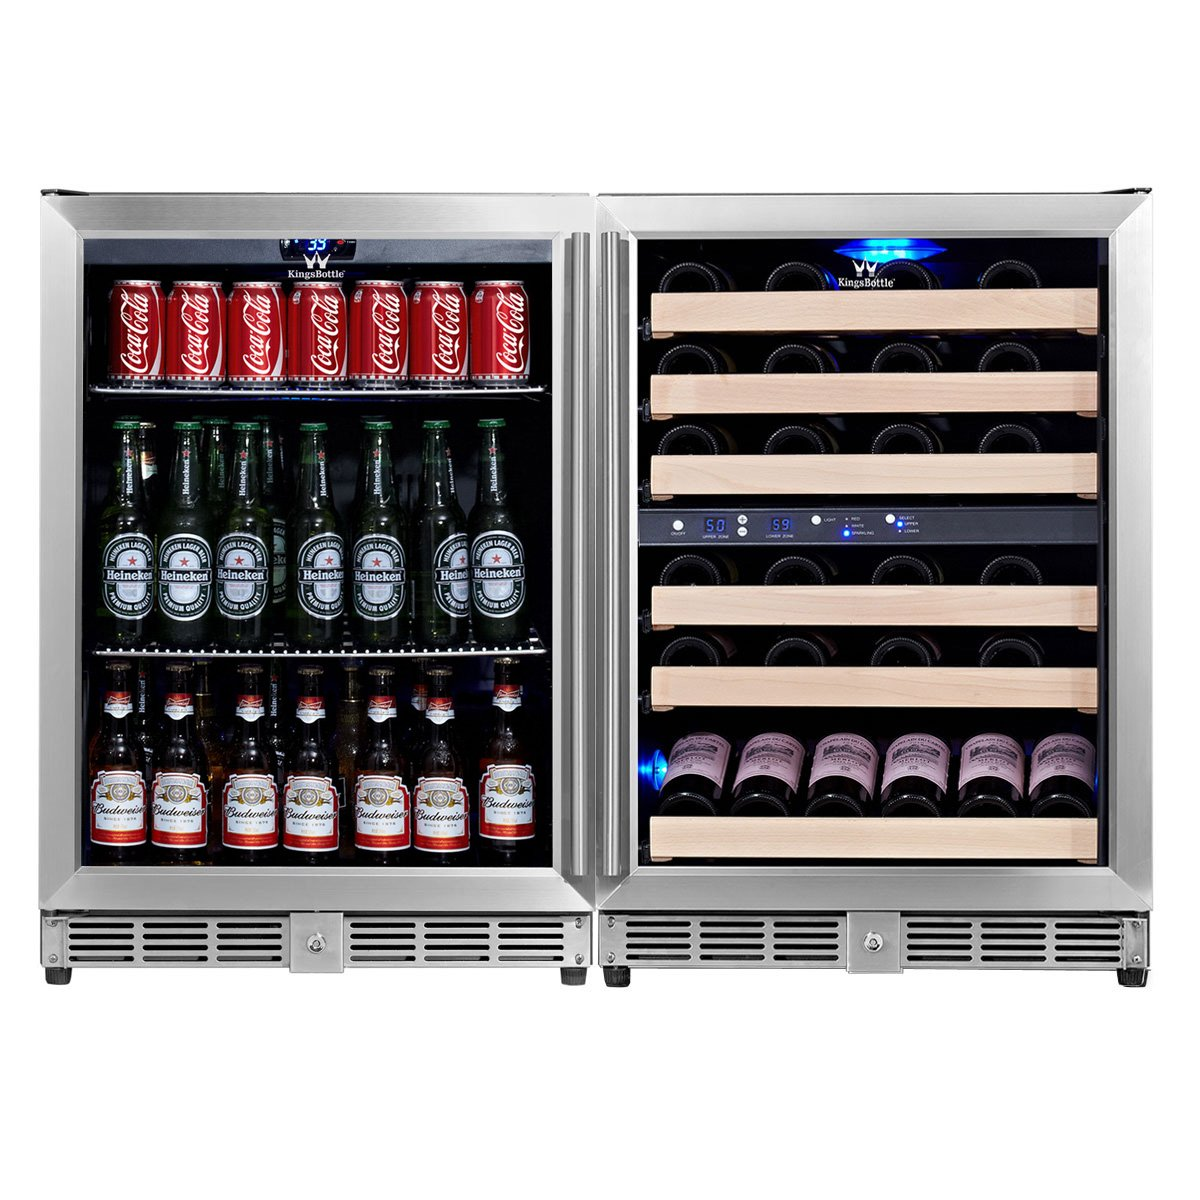 KingsBottle 3-Zone Wine and Beverage Combo Refrigerator, Holds 160 Cans and 46 Bottles, Stainless Steel with Glass Door by KingsBottle